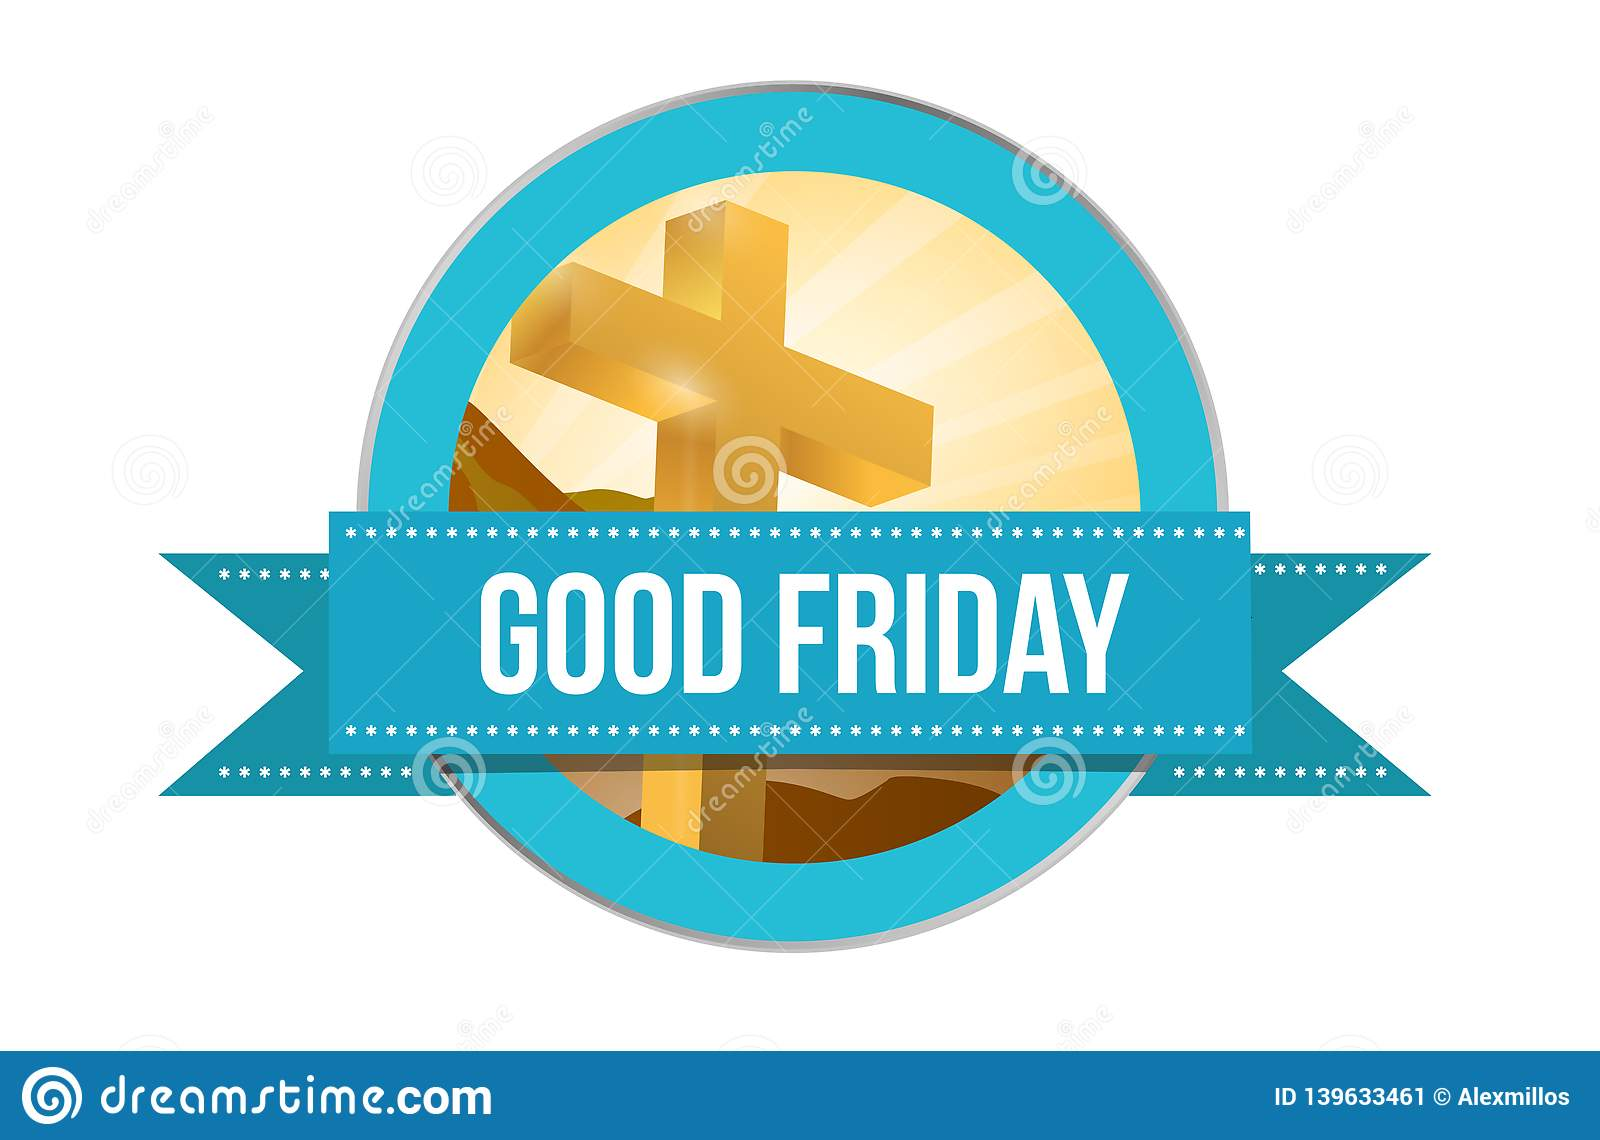 Good Friday day. Religious seal illustration isolated